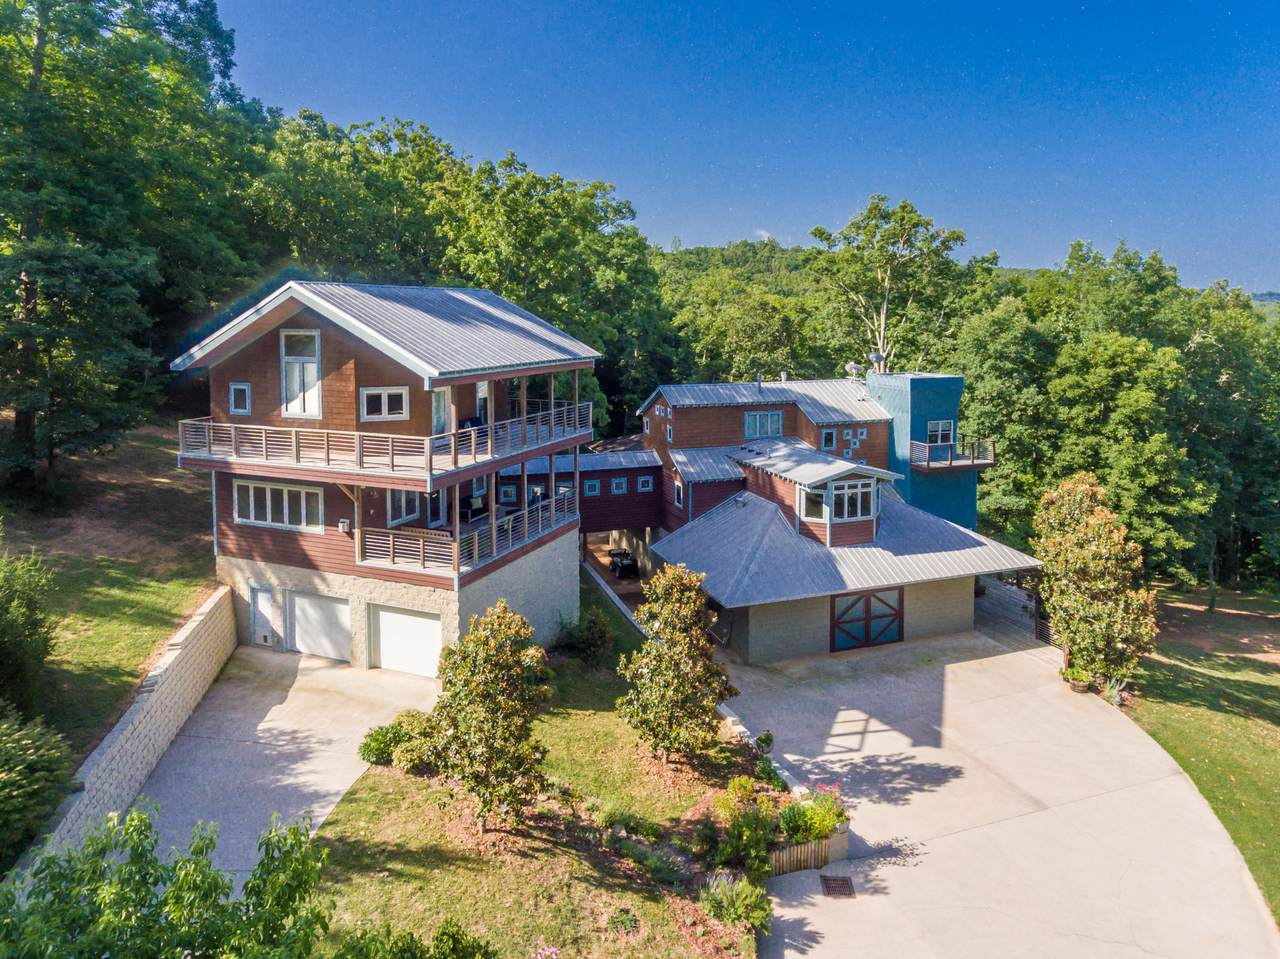 777 Oliver Springs Hwy - Photo 1